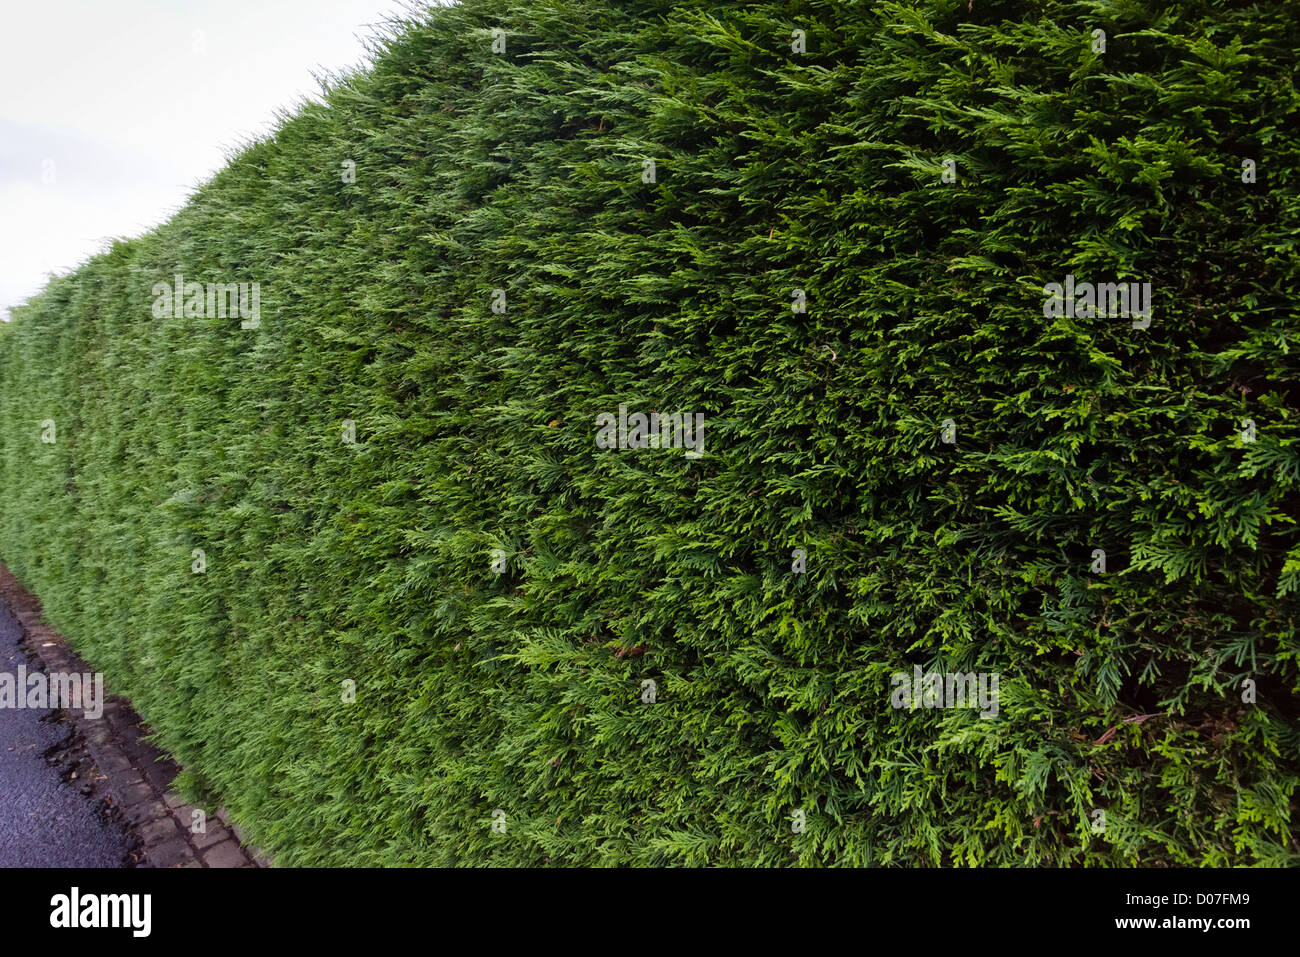 Clipping A Hedge Stockfotos & Clipping A Hedge Bilder Alamy